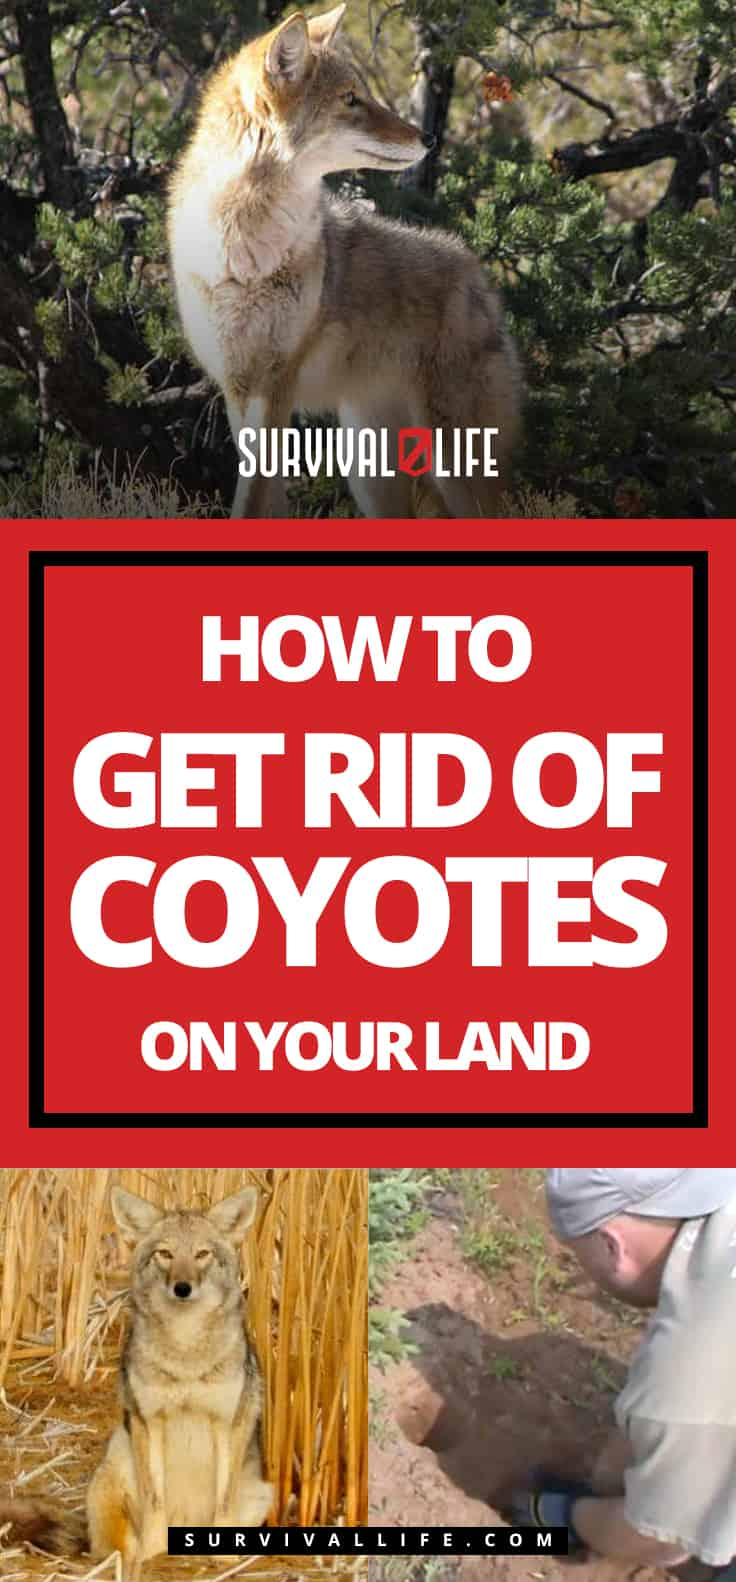 How To Get Rid Of Coyotes On Your Land | https://survivallife.com/get-rid-coyotes/